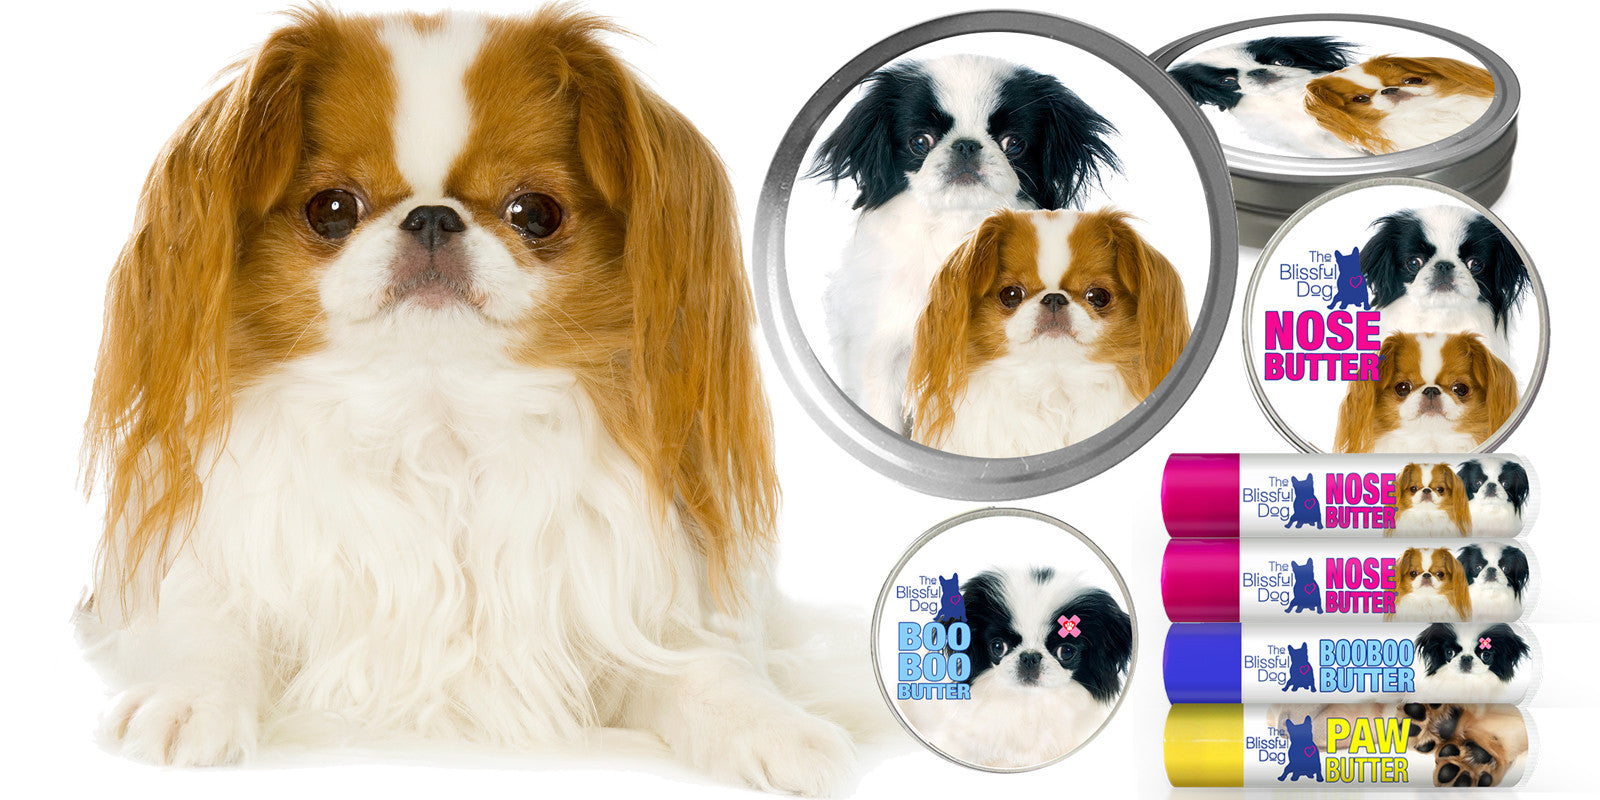 Japanese Chin gift Ideas